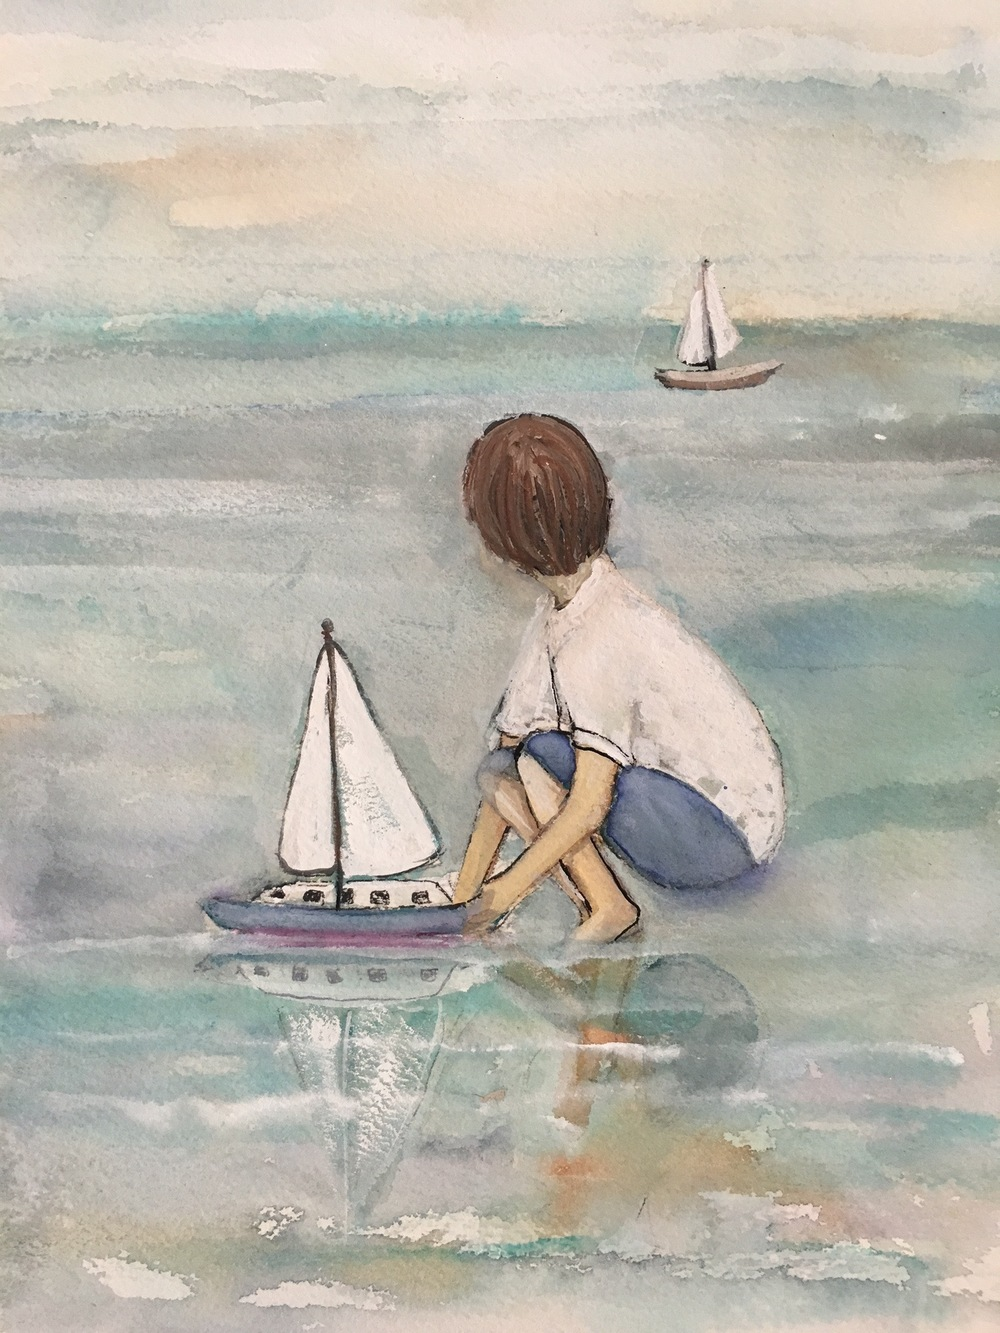 Boating A4 Watercolour.jpg